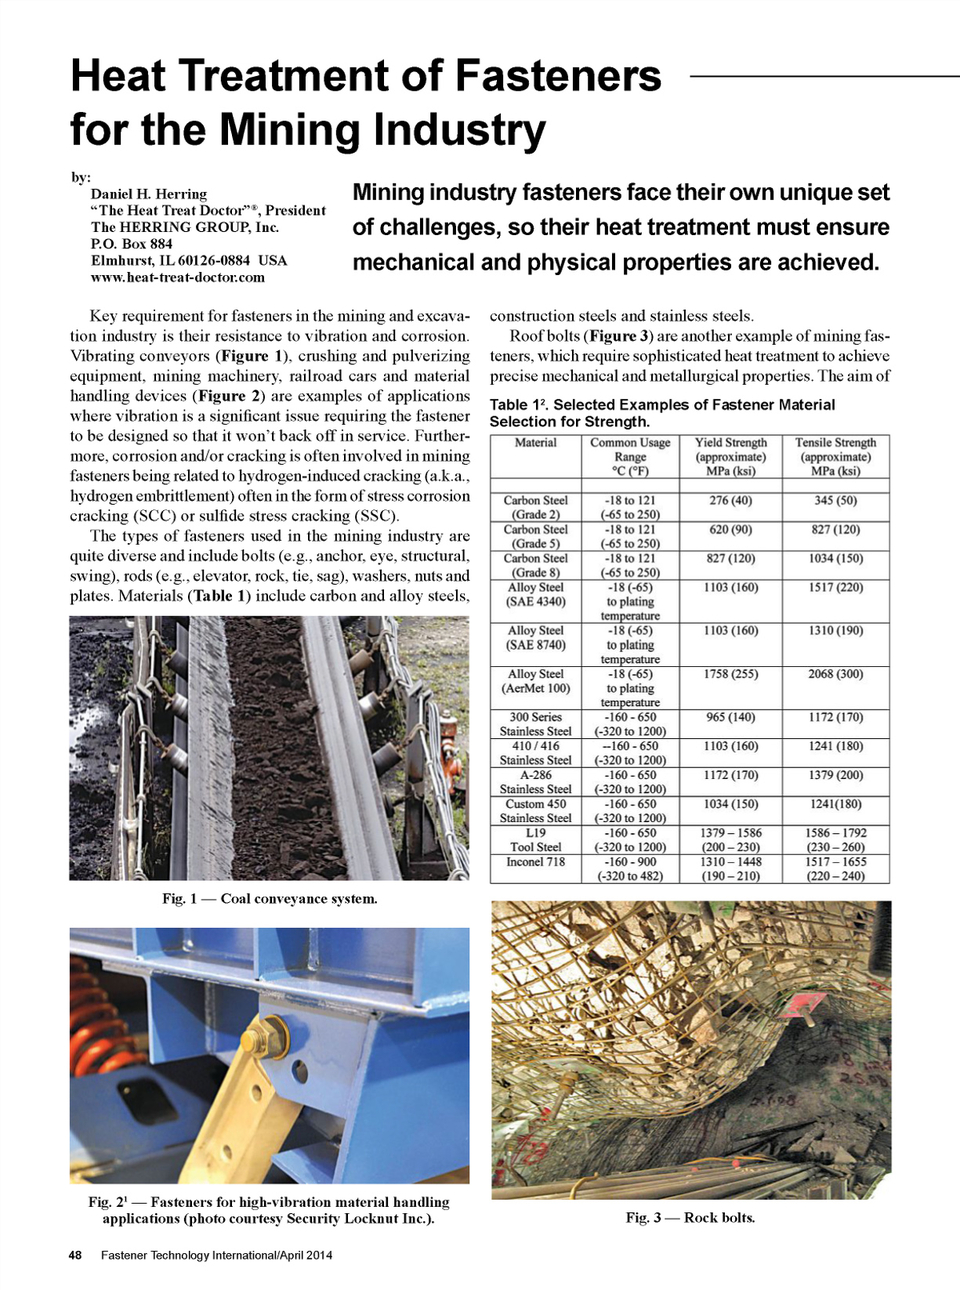 Fastener Technology International April/May 2014 Page 48